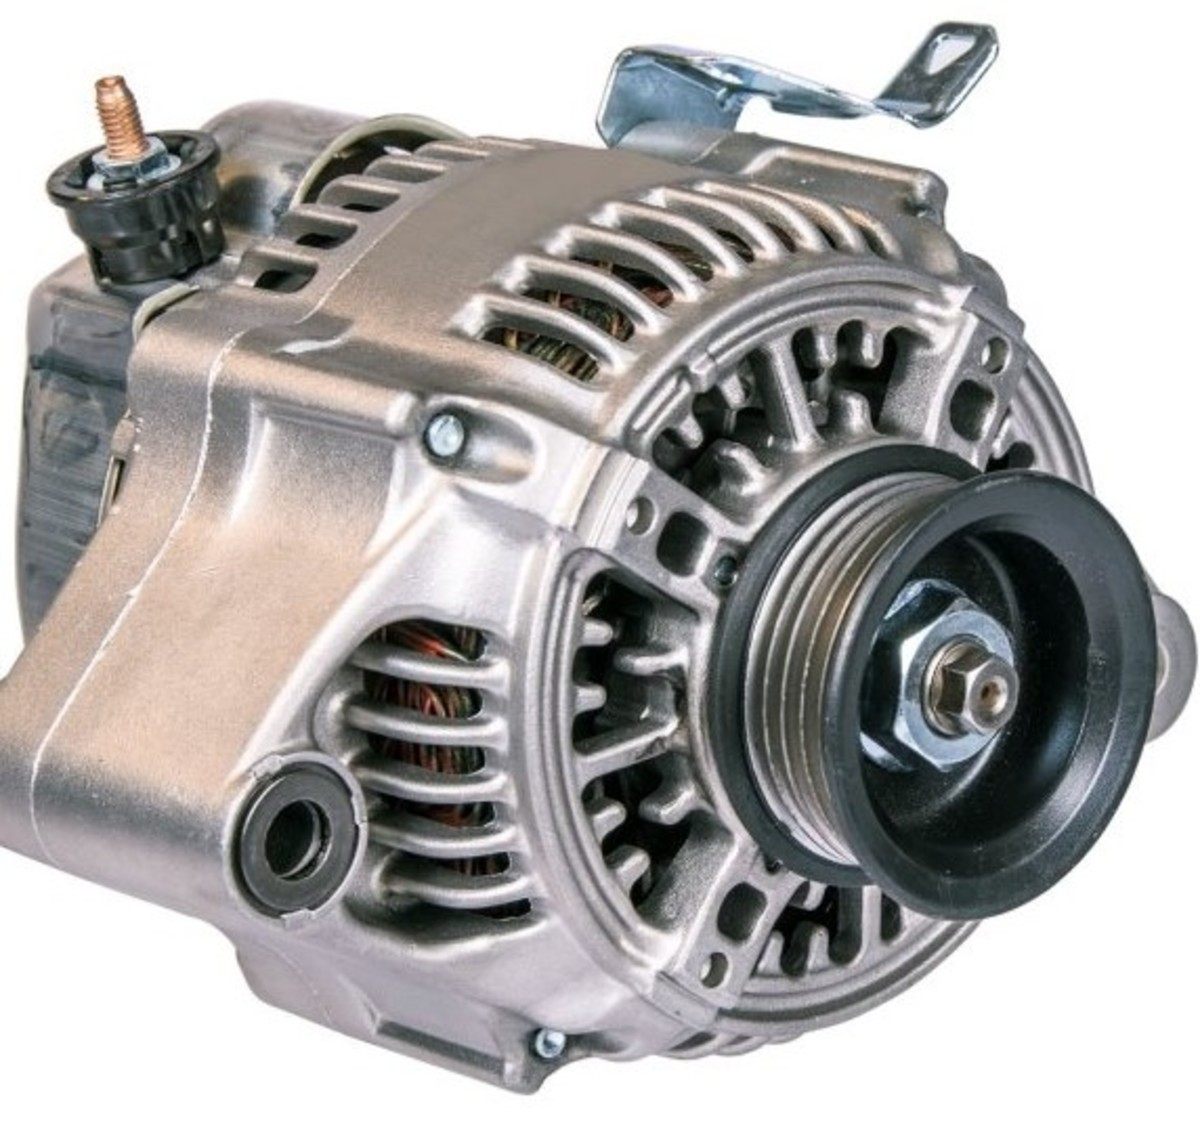 Alternator Replacement Video: V6 Camry, Avalon, Solara, Highlander and Lexus ES300 (3.0 - 3.3L MZFE Engine Type)